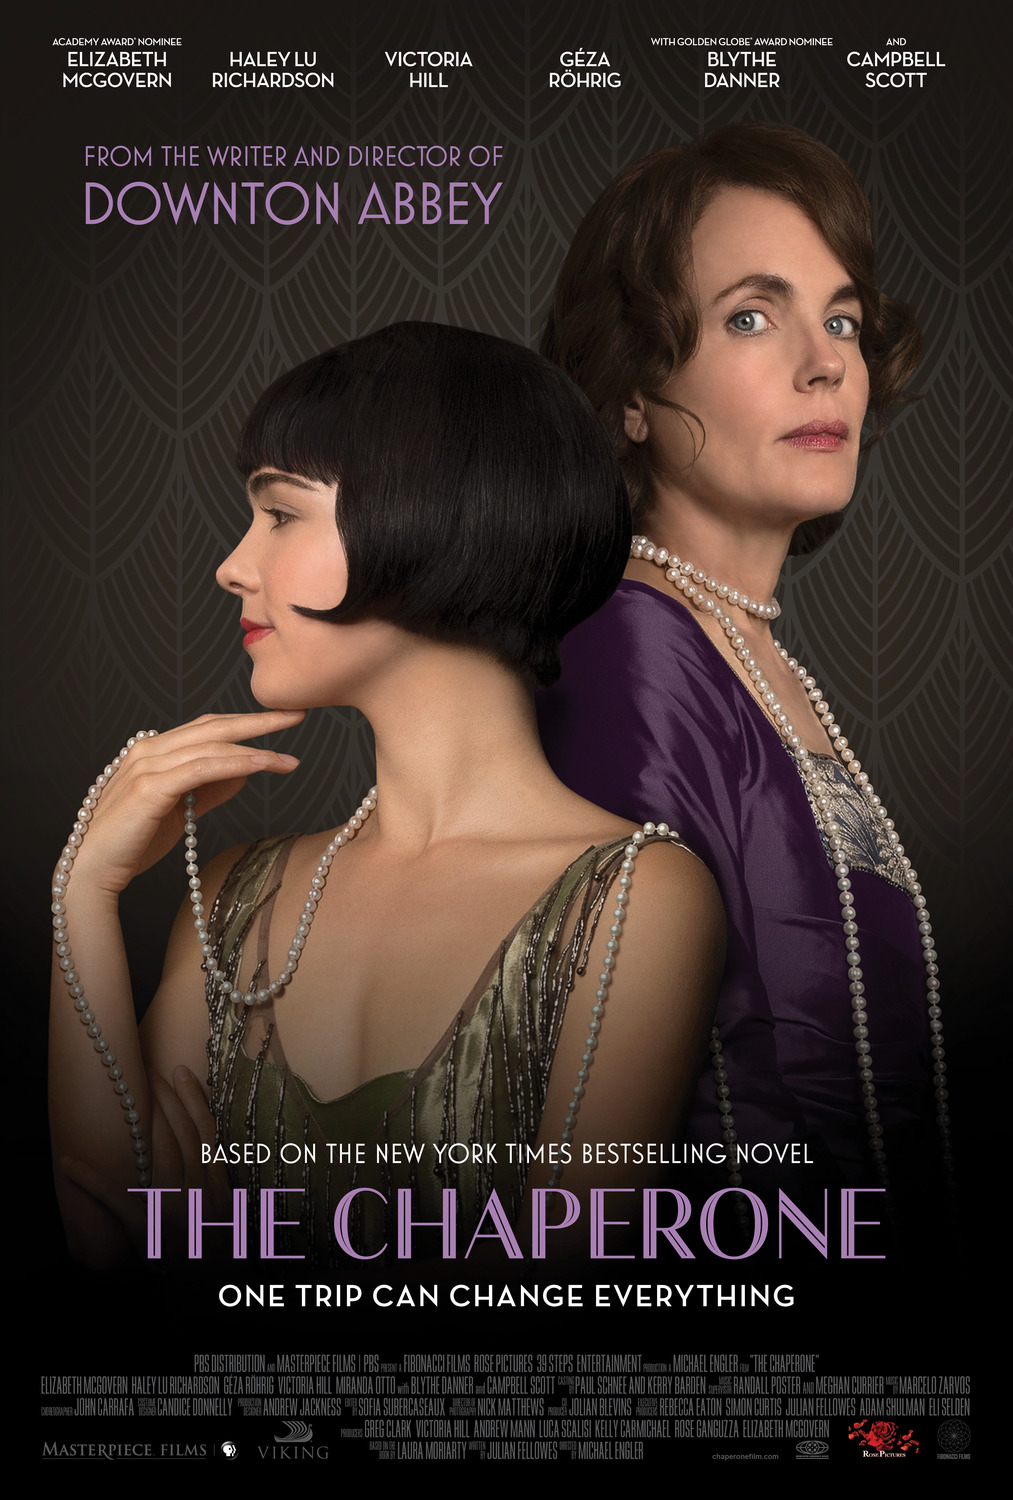 affiche du film The Chaperone